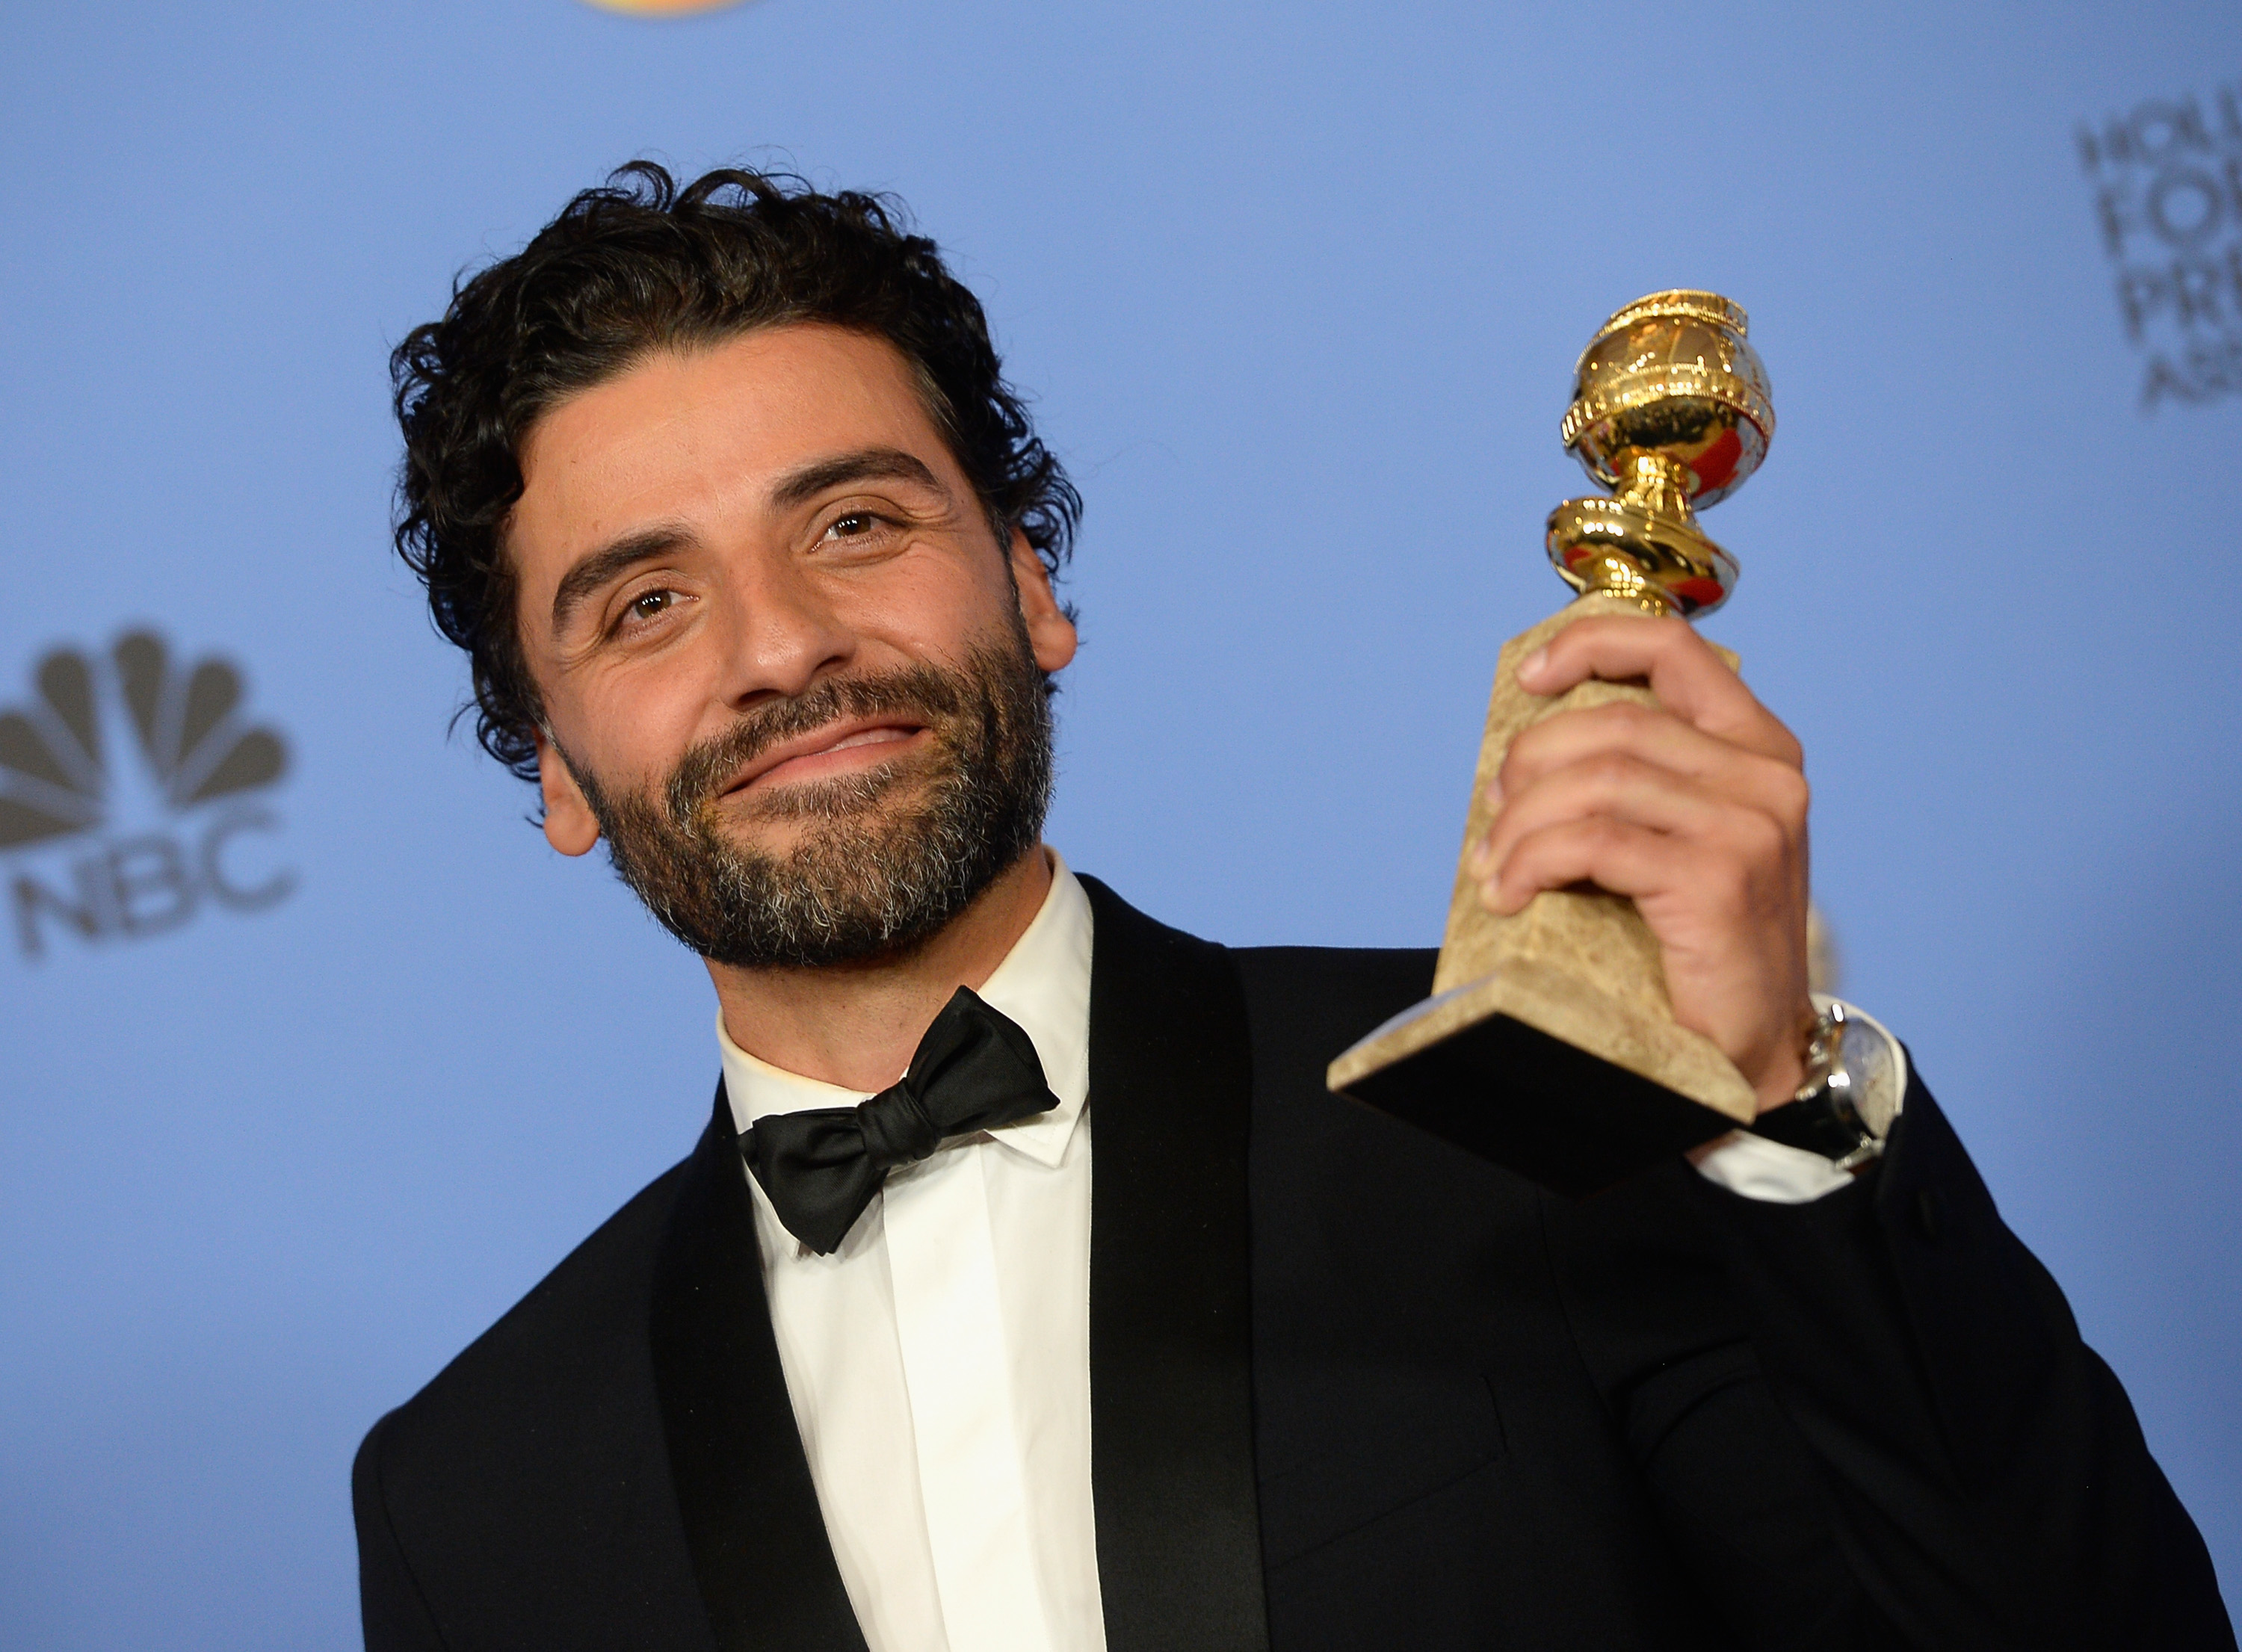 To celebrate Oscar Isaac's birthday, here are some of our favorite moments from his career